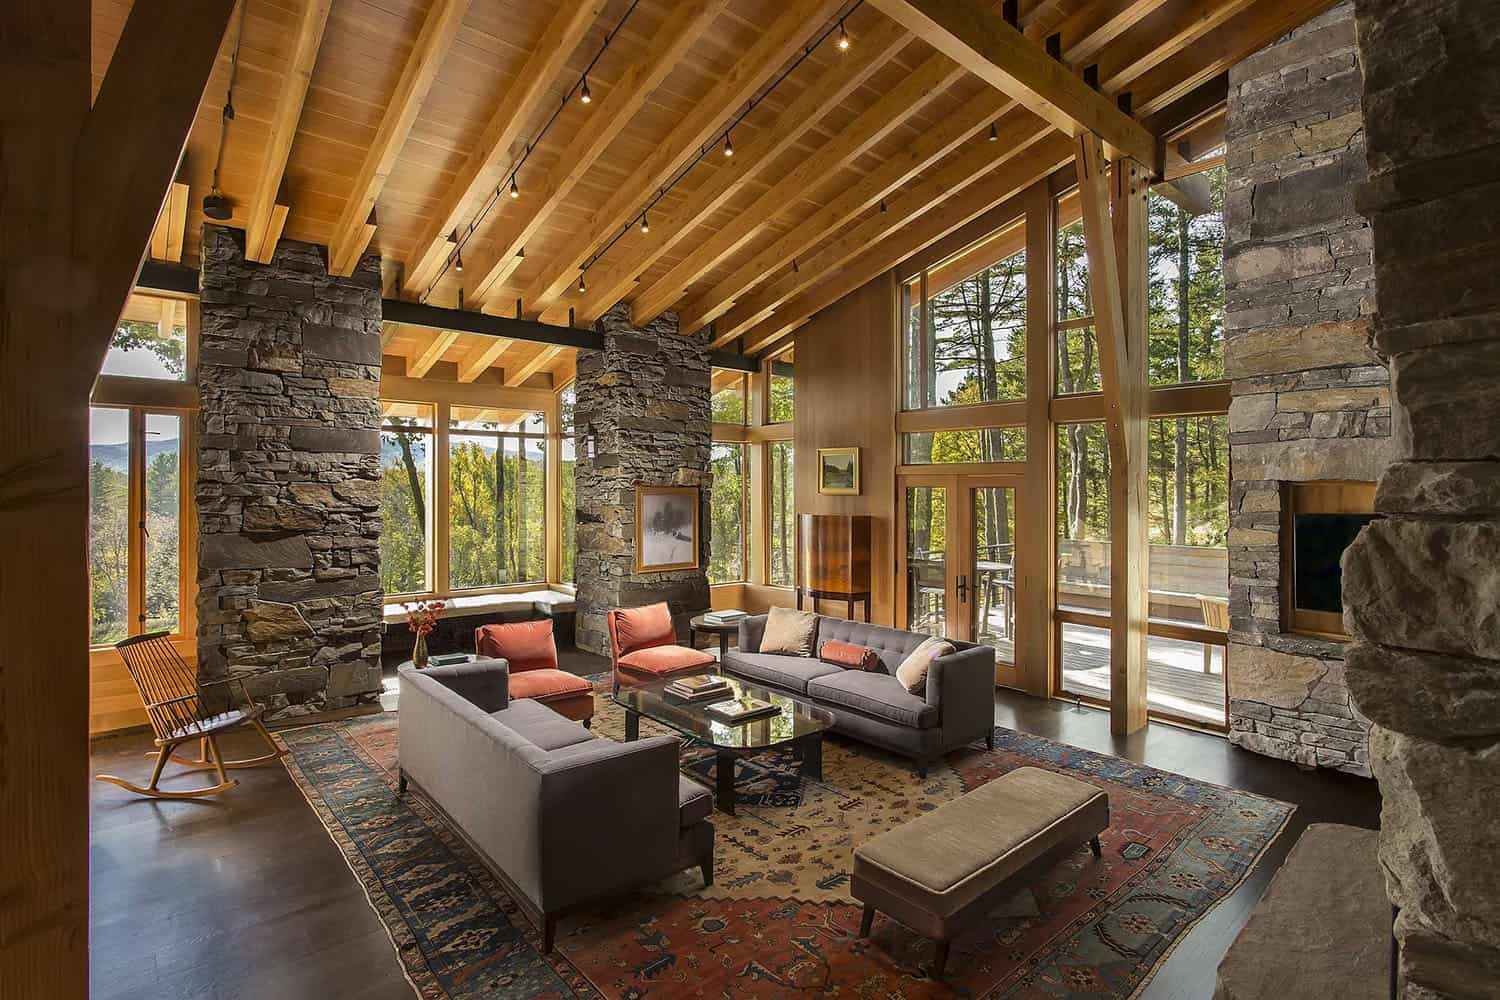 Rustic-modern house organically forms into hillside in the Berkshires